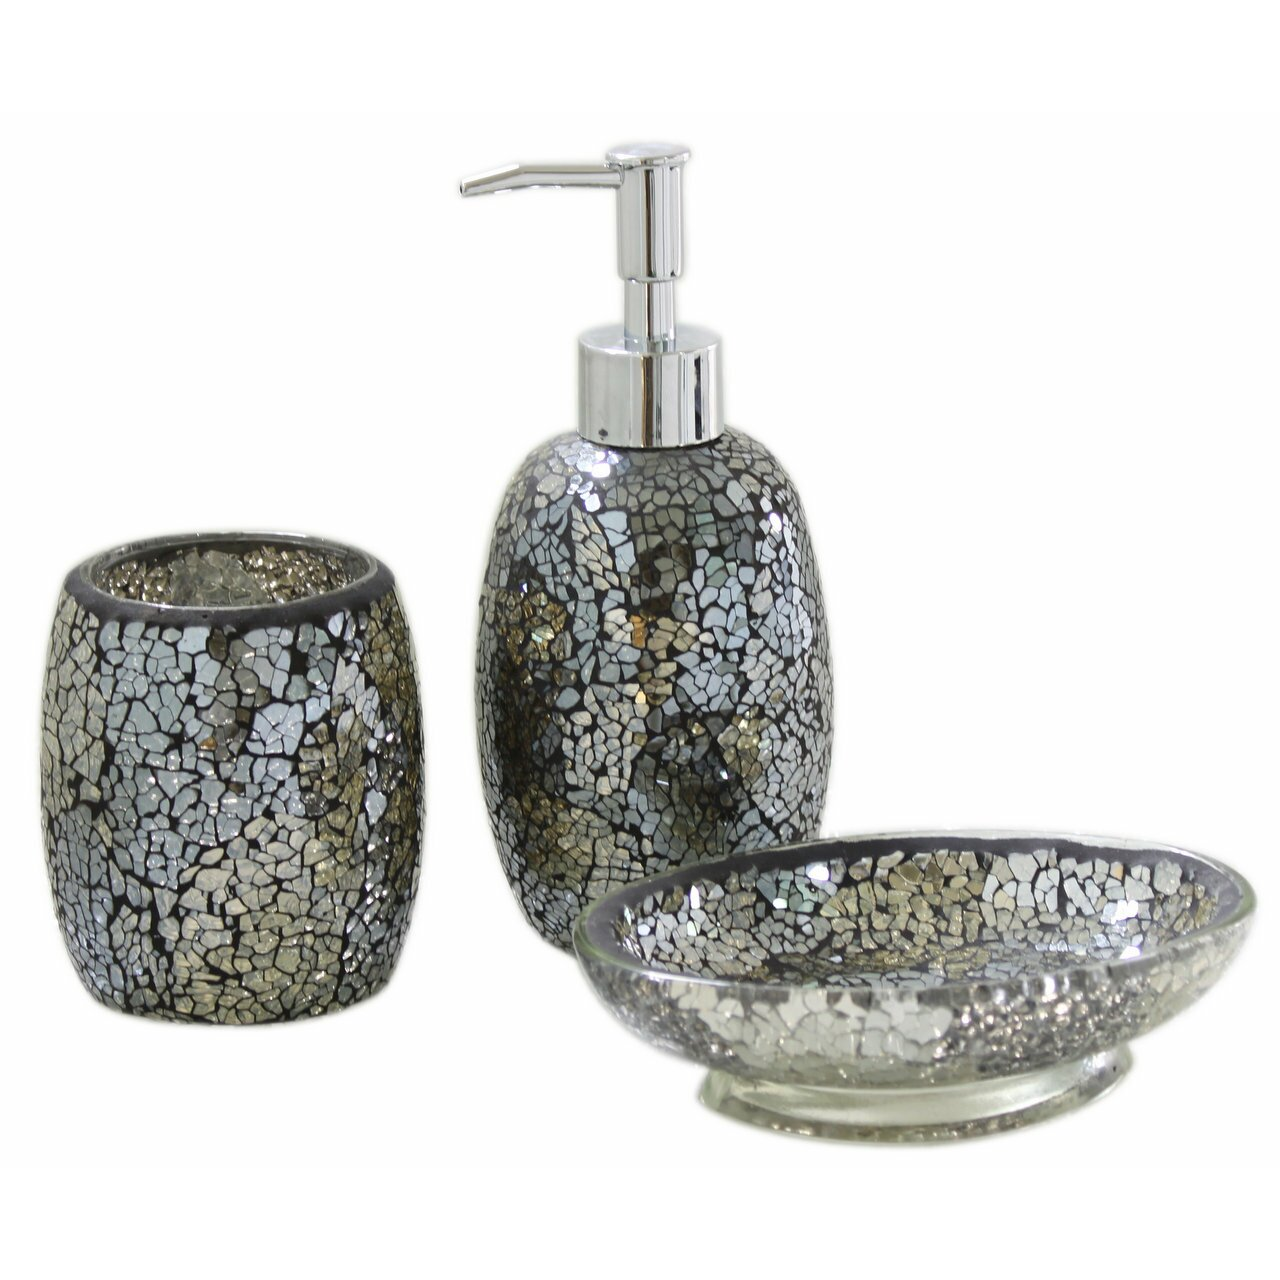 House additions mosaic bathroom accessory set reviews for Mosaic bath accessories